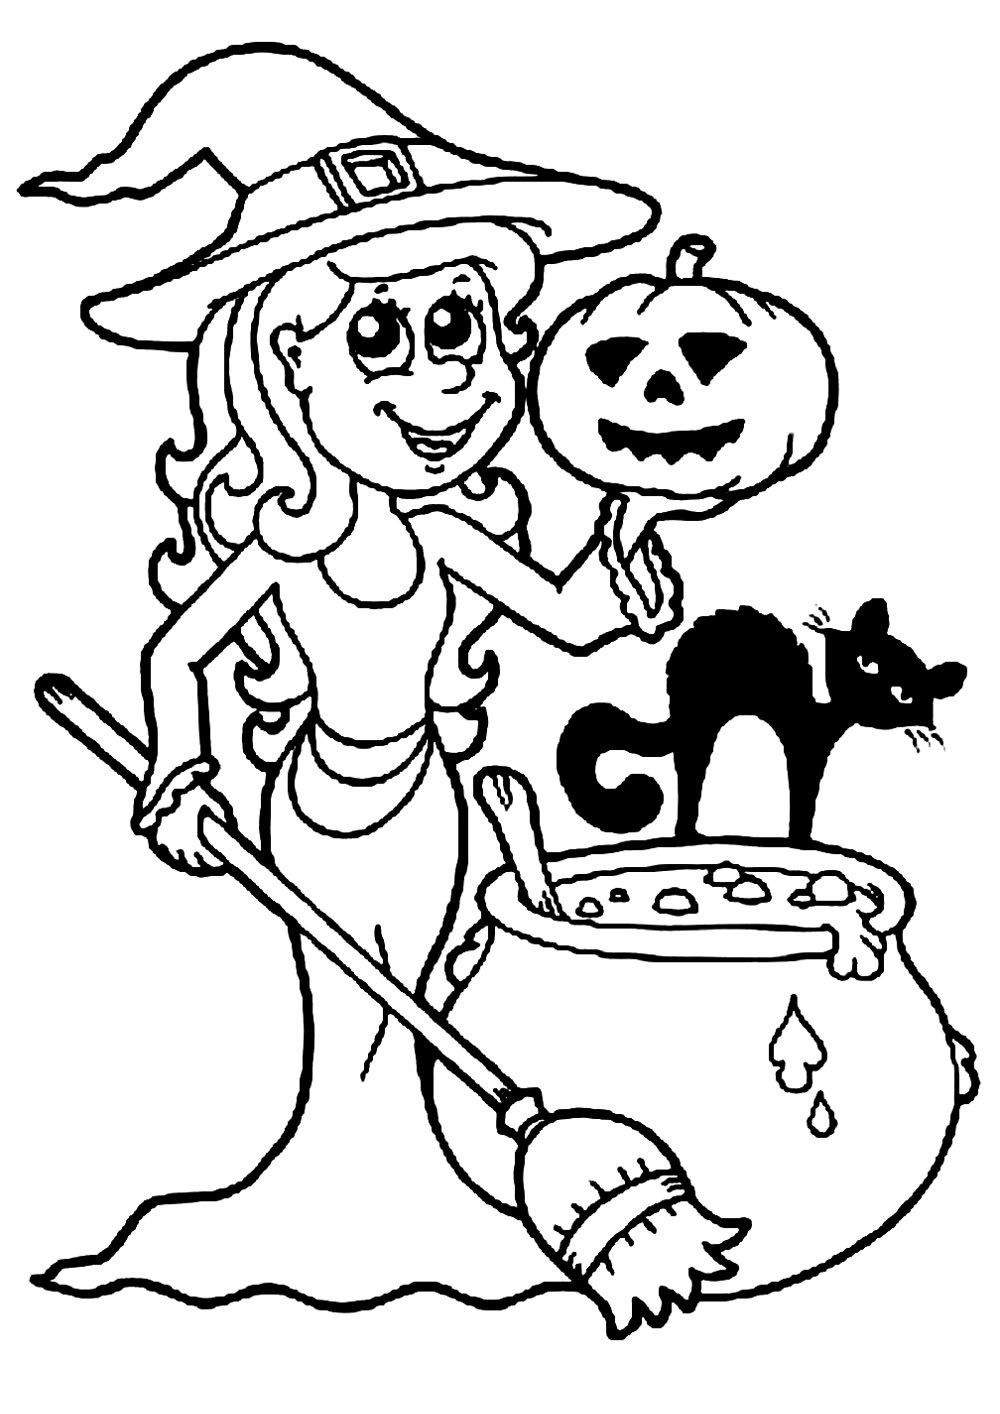 Halloween Coloring Worksheets For Preschoolers Halloween Free To Color For Kids Halloween Coloring Book Halloween Coloring Pages Free Halloween Coloring Pages [ 1414 x 1000 Pixel ]